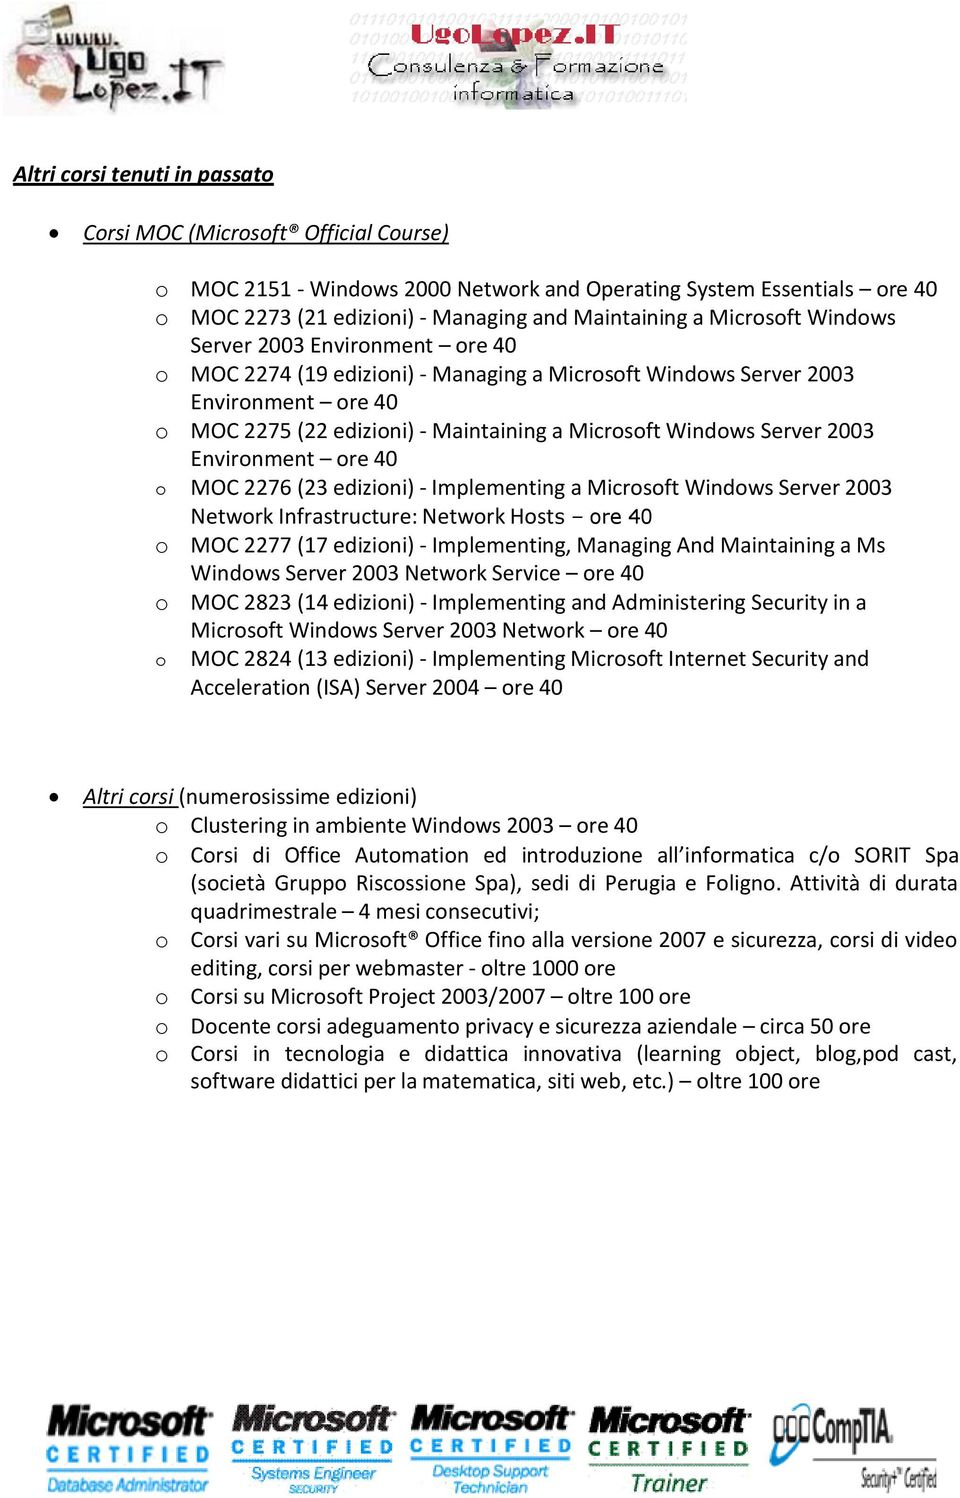 (23 edizini) - Implementing a Micrsft Windws Server 2003 Netwrk Infrastructure: Netwrk Hsts re 40 MOC 2277 (17 edizini) - Implementing, Managing And Maintaining a Ms Windws Server 2003 Netwrk Service